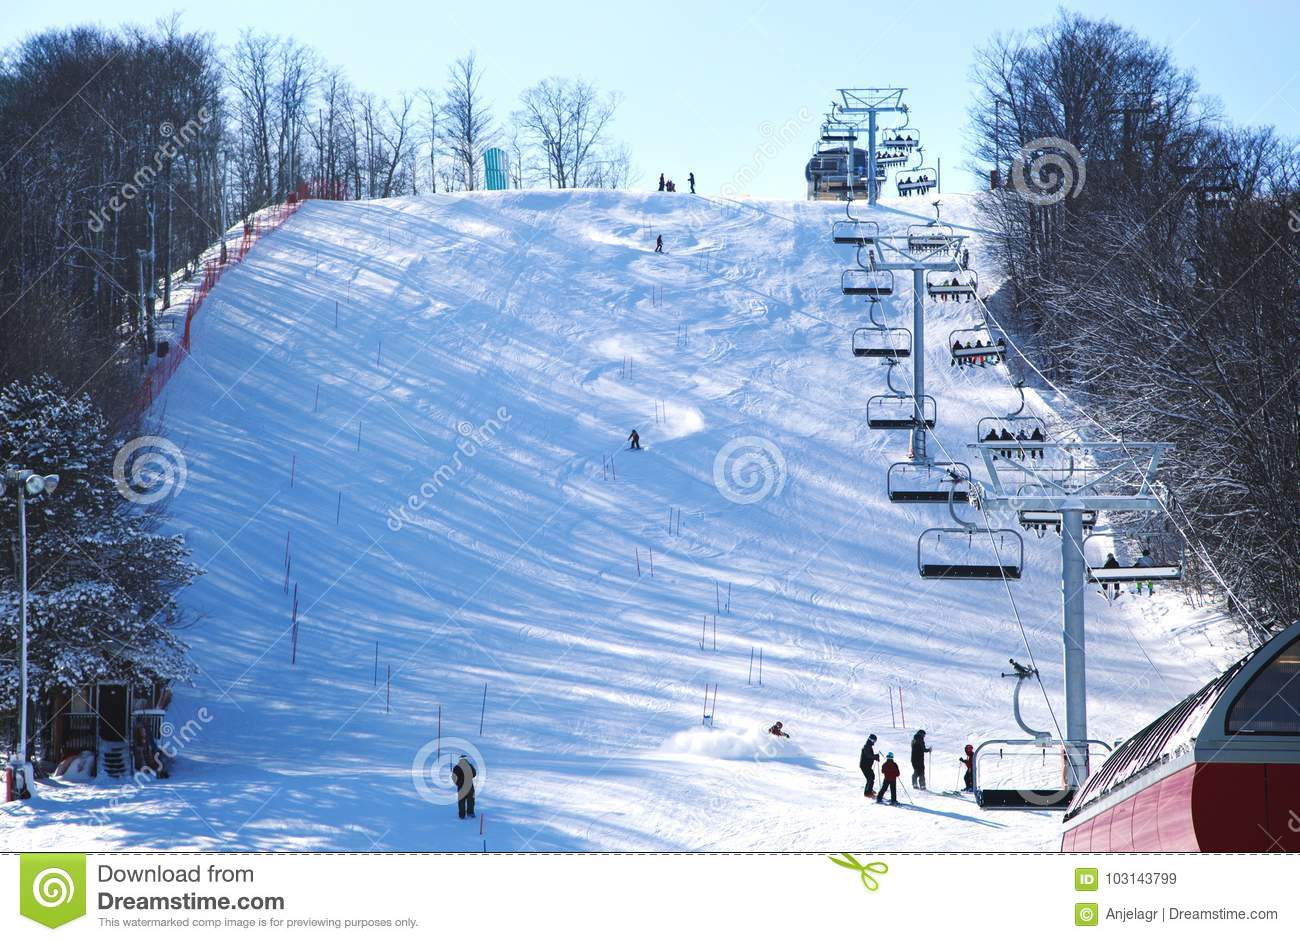 skiers going down the slope at horseshoe ski resort in barrie, canda